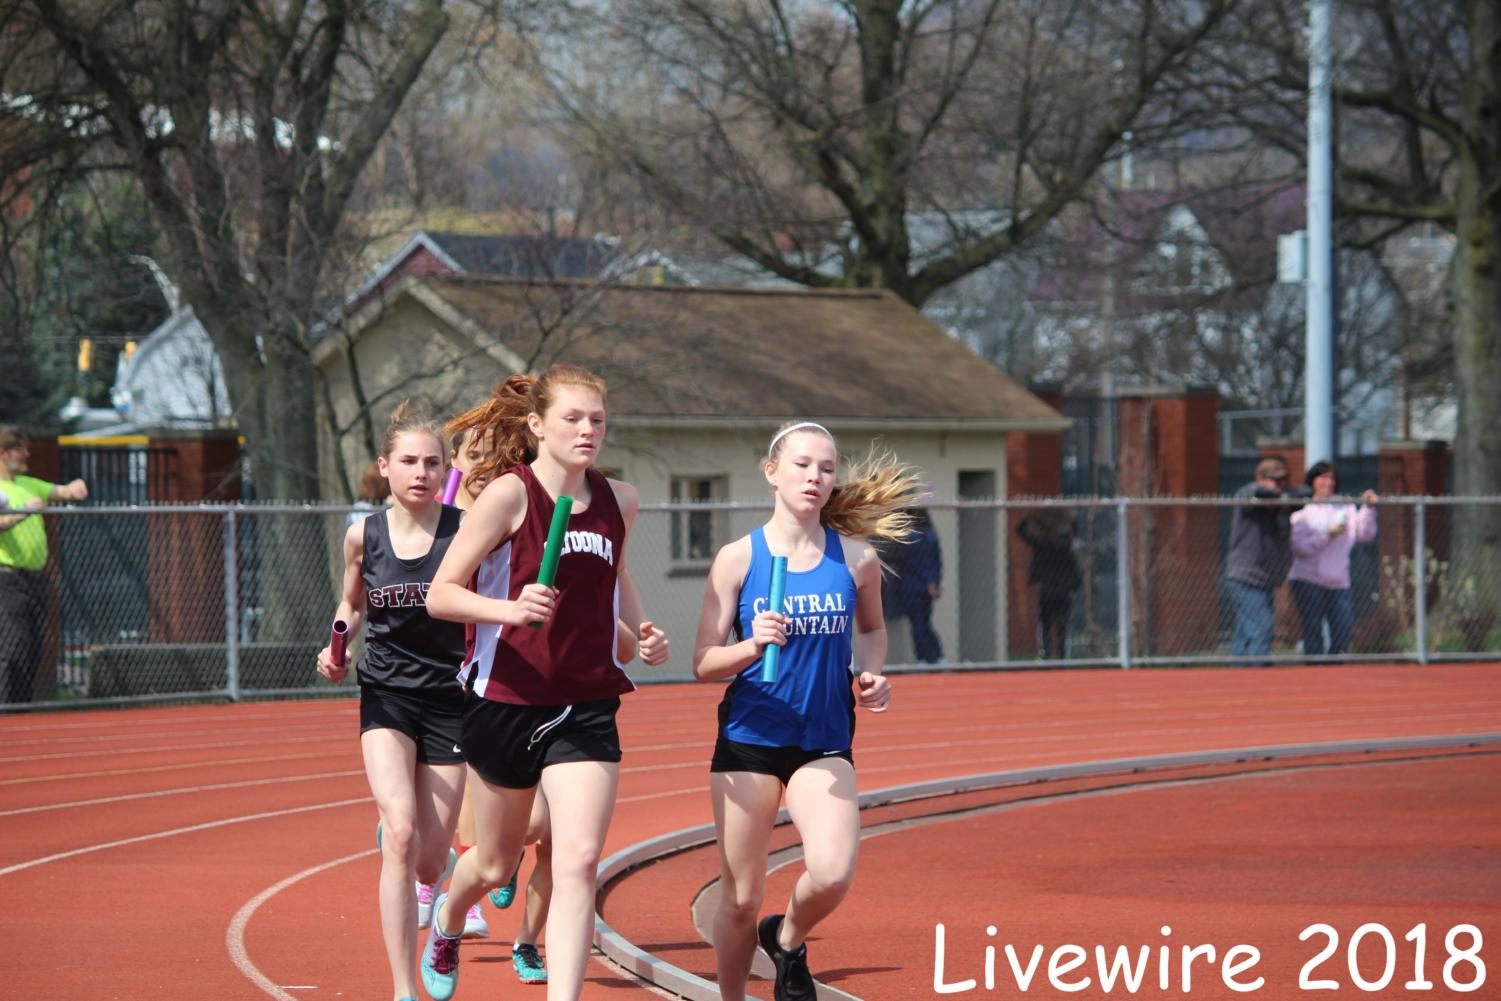 Run! Abbie Herncane runs in the track meet on Saturday the twenty eighth. Hurcane also ran against girls and boys from the other schools